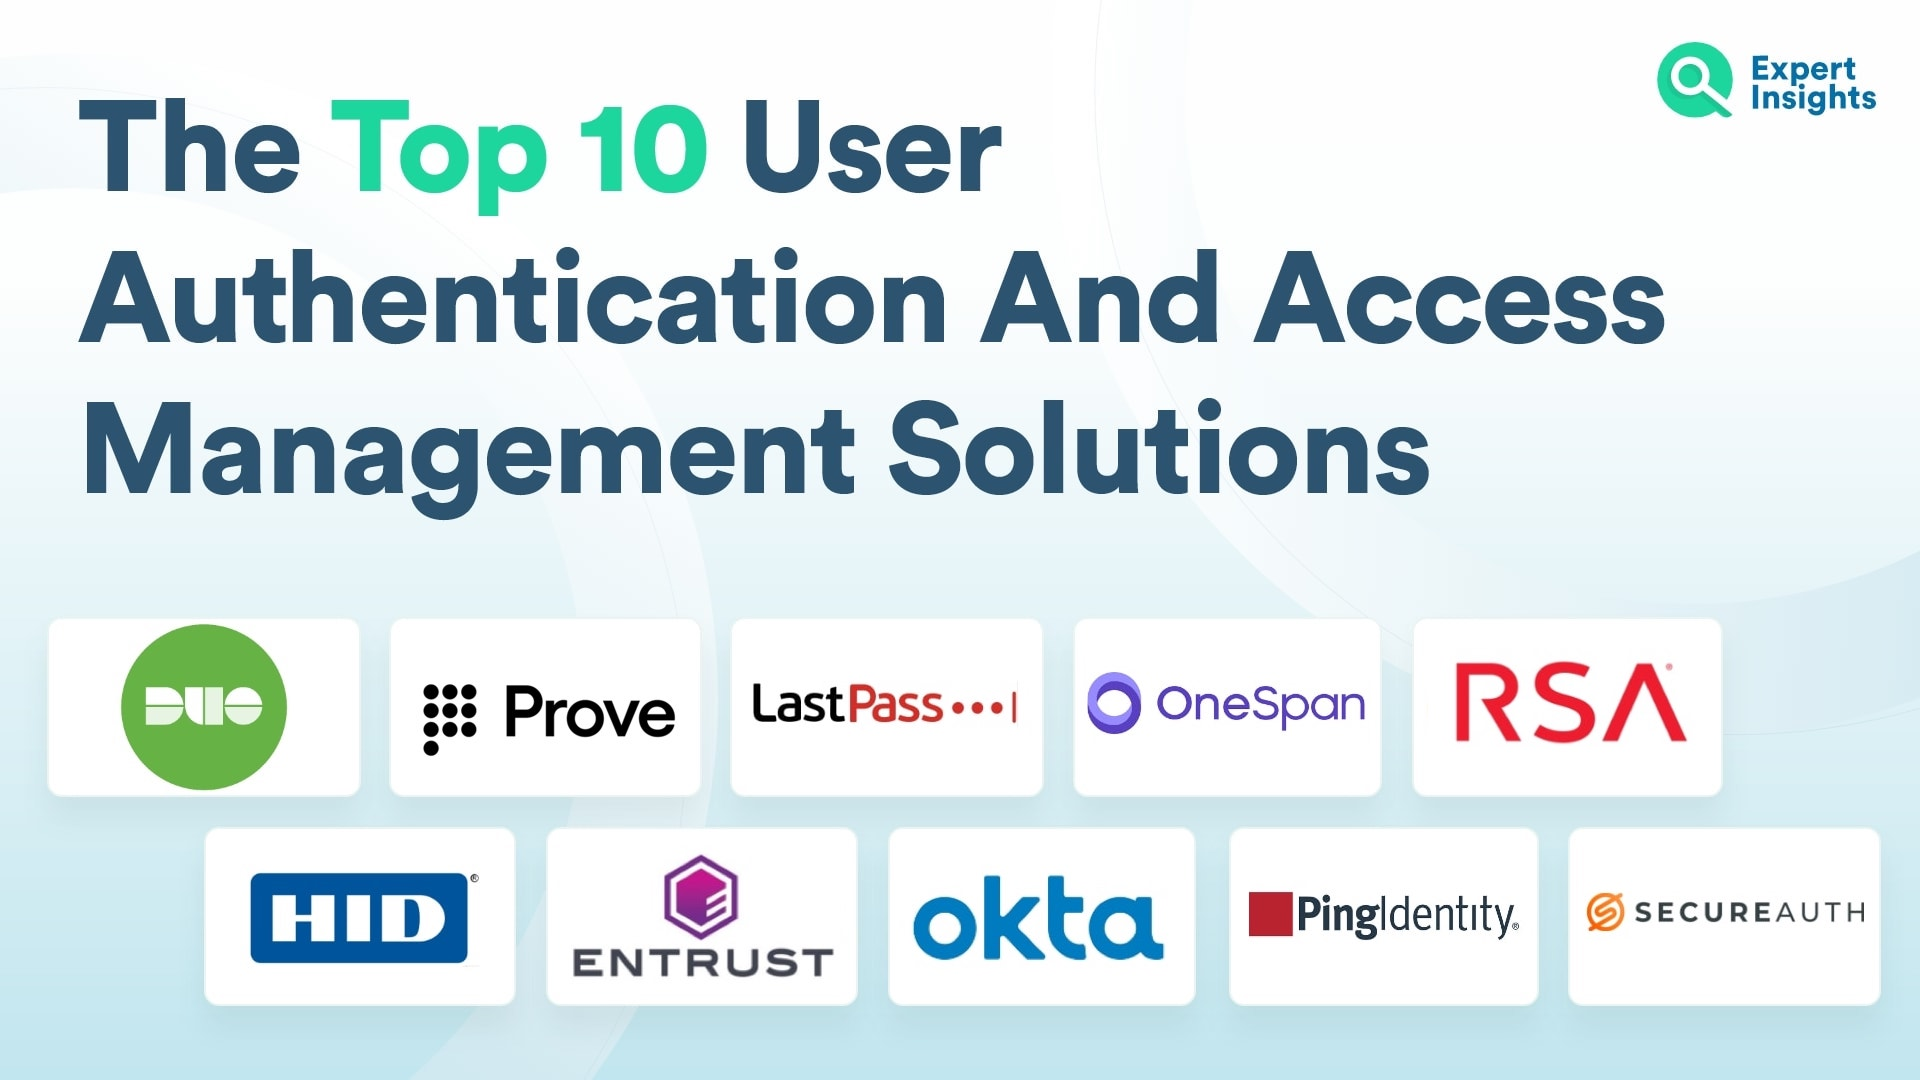 Top 10 User Authentication And Access Management Solutions